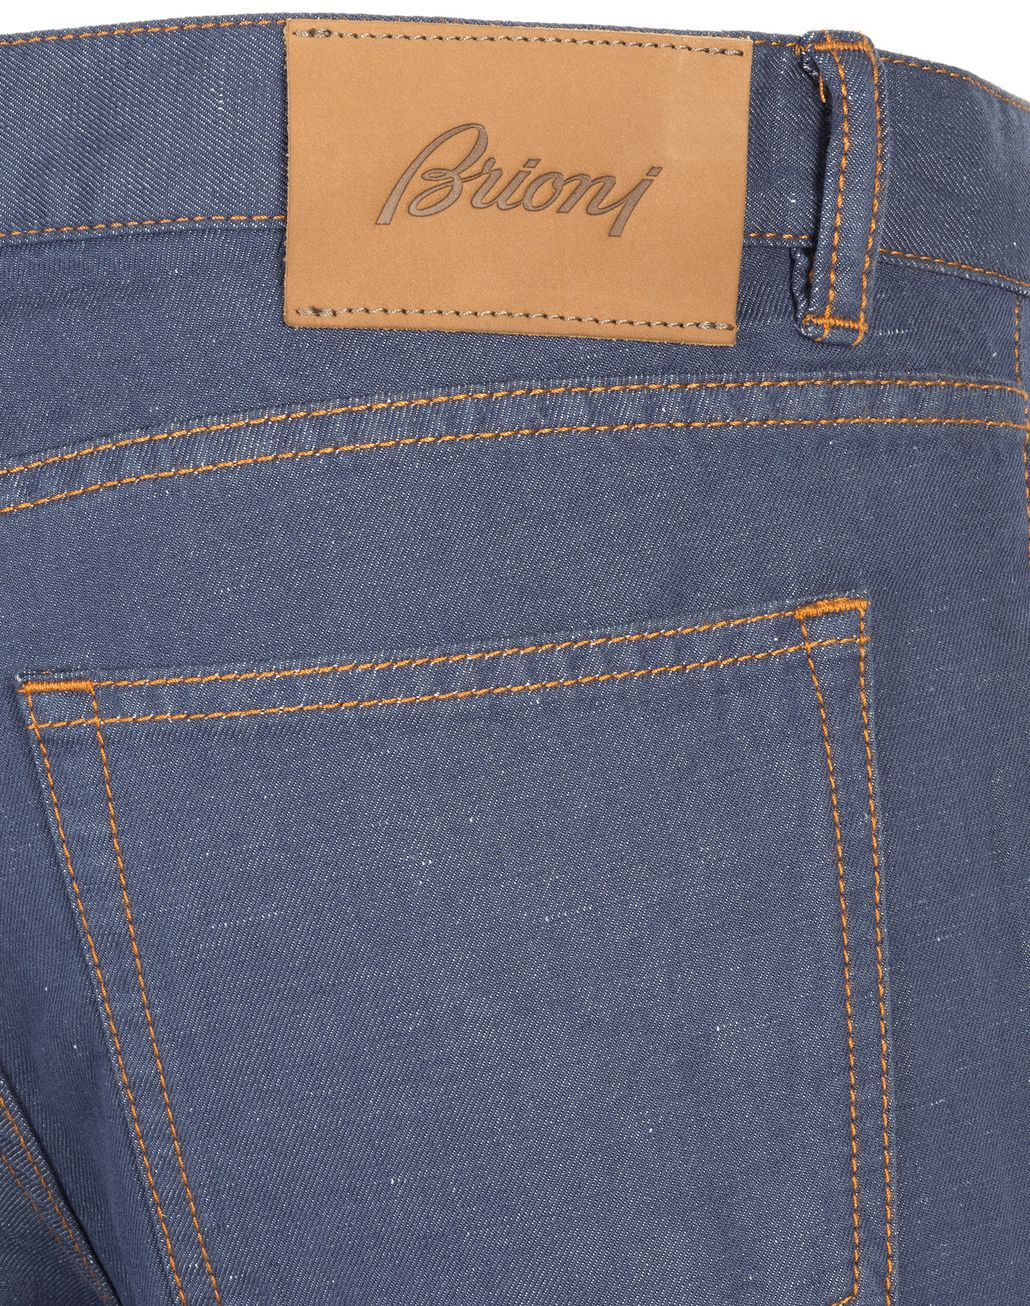 BRIONI Bluette Slim-Fit Cotton and Linen Aneto Jeans  Denim [*** pickupInStoreShippingNotGuaranteed_info ***] a